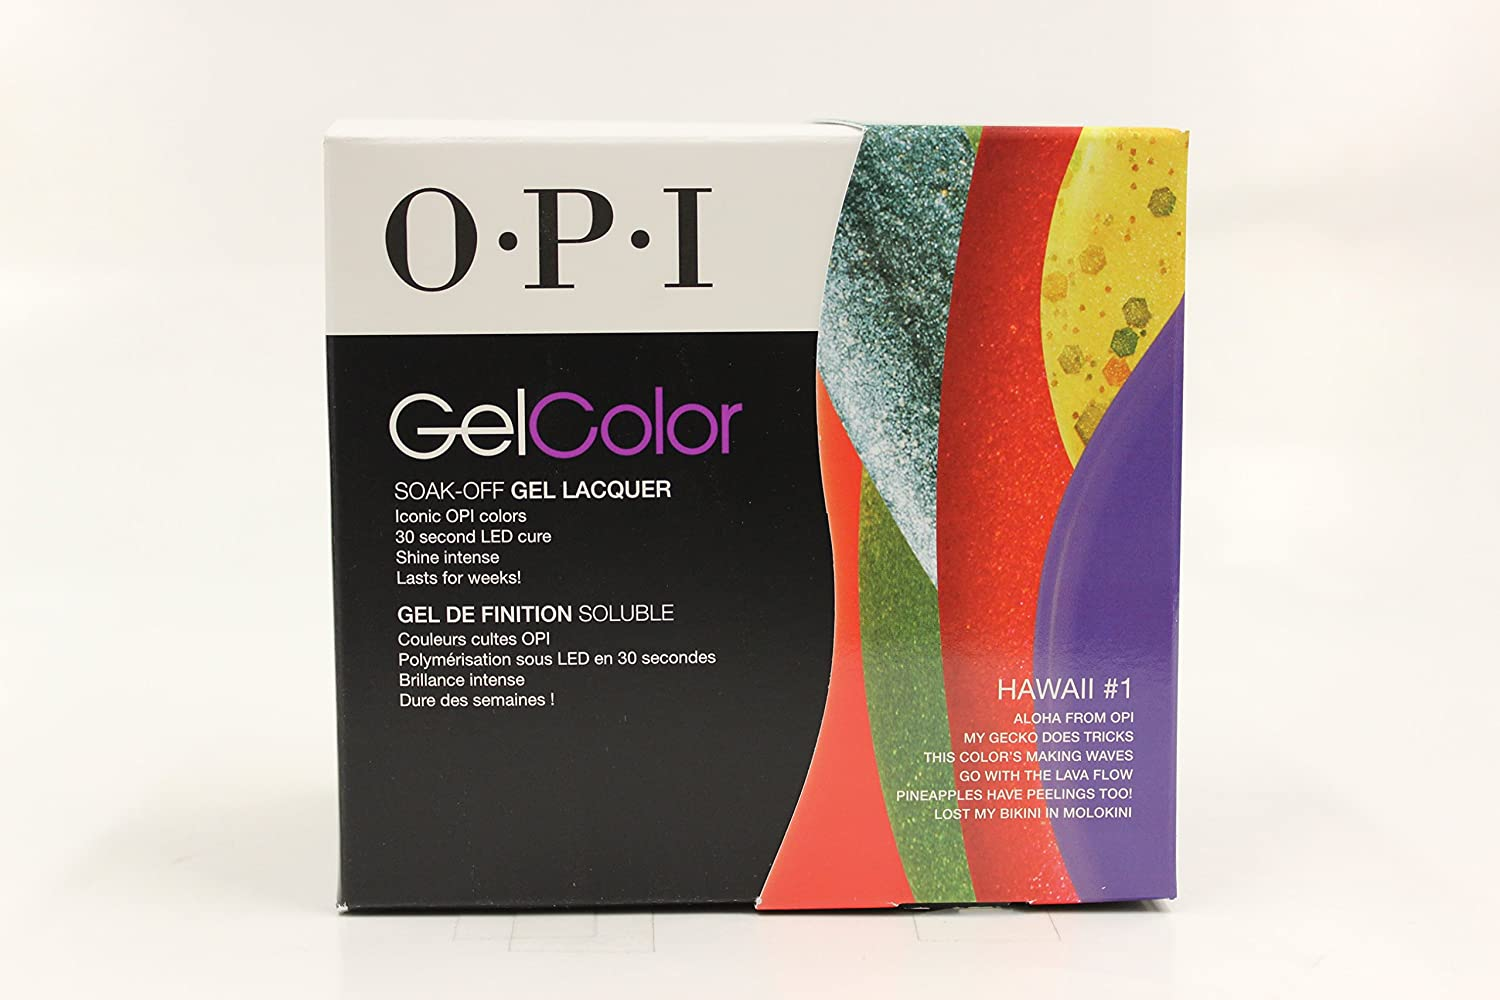 OPI Laca De Uñas De Gel, Hawaii Kit 15 ml – pack de 6: Amazon.es: Belleza